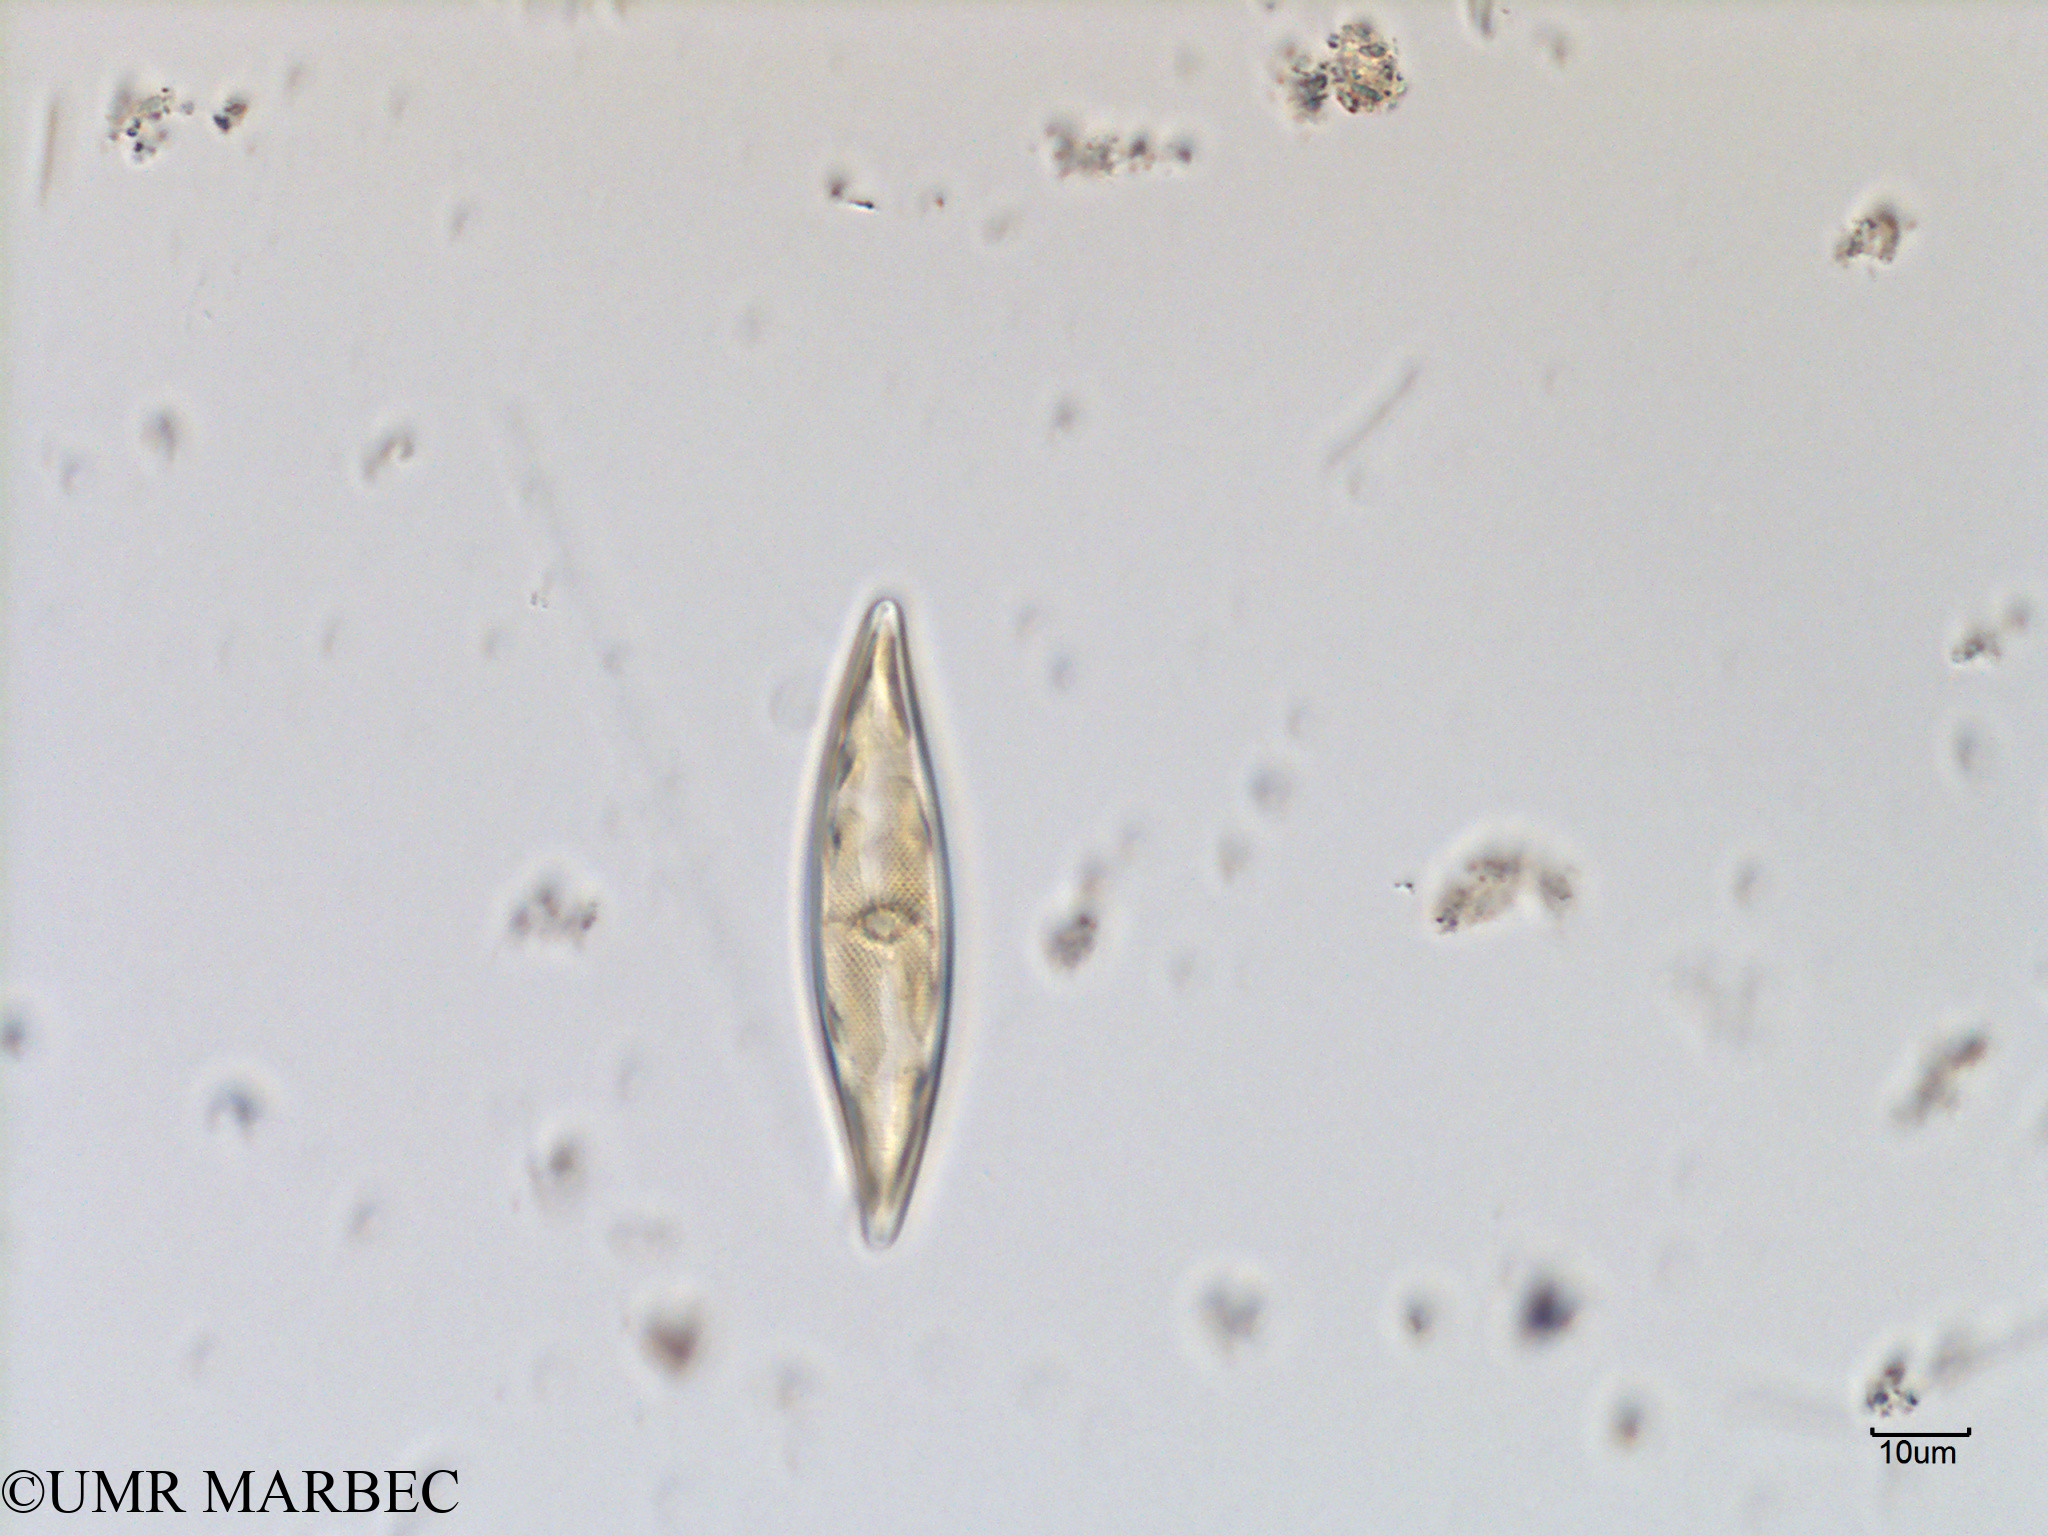 phyto/Scattered_Islands/mayotte_lagoon/SIREME May 2016/Pleurosigma sp10 (MAY4_pleurosigma-2).tif(copy).jpg